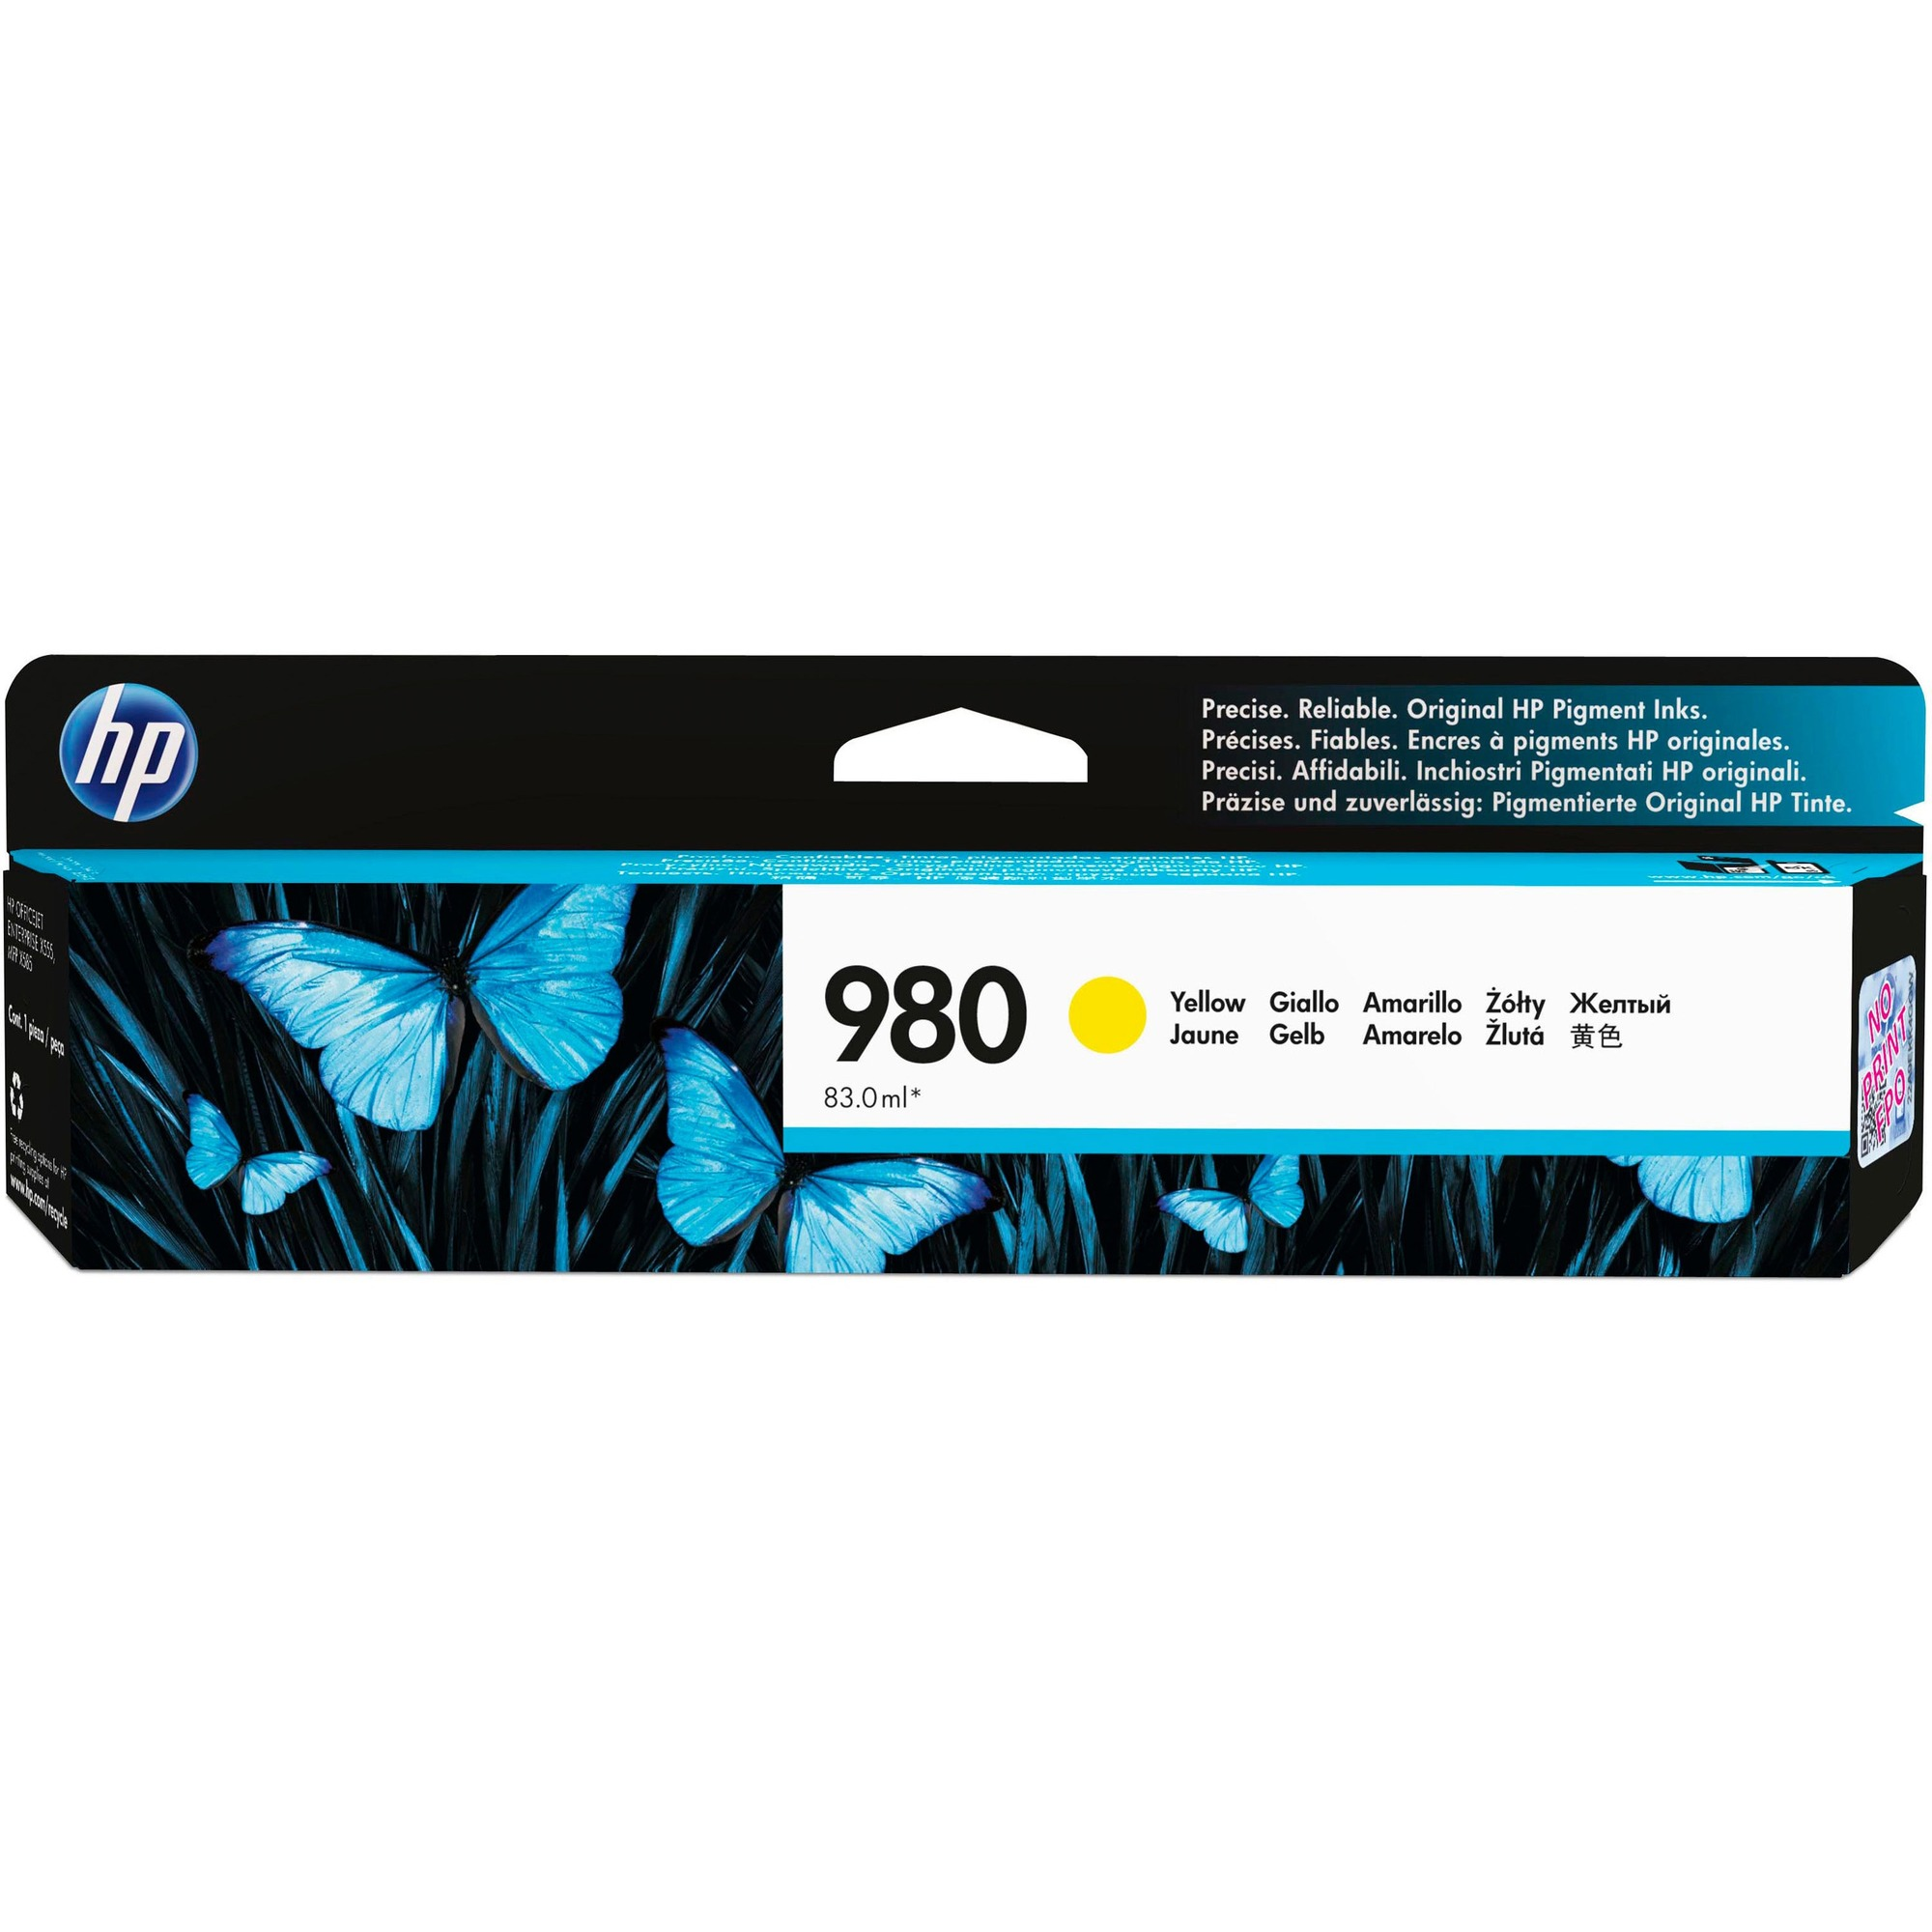 HP 980 Ink Cartridge - Yellow